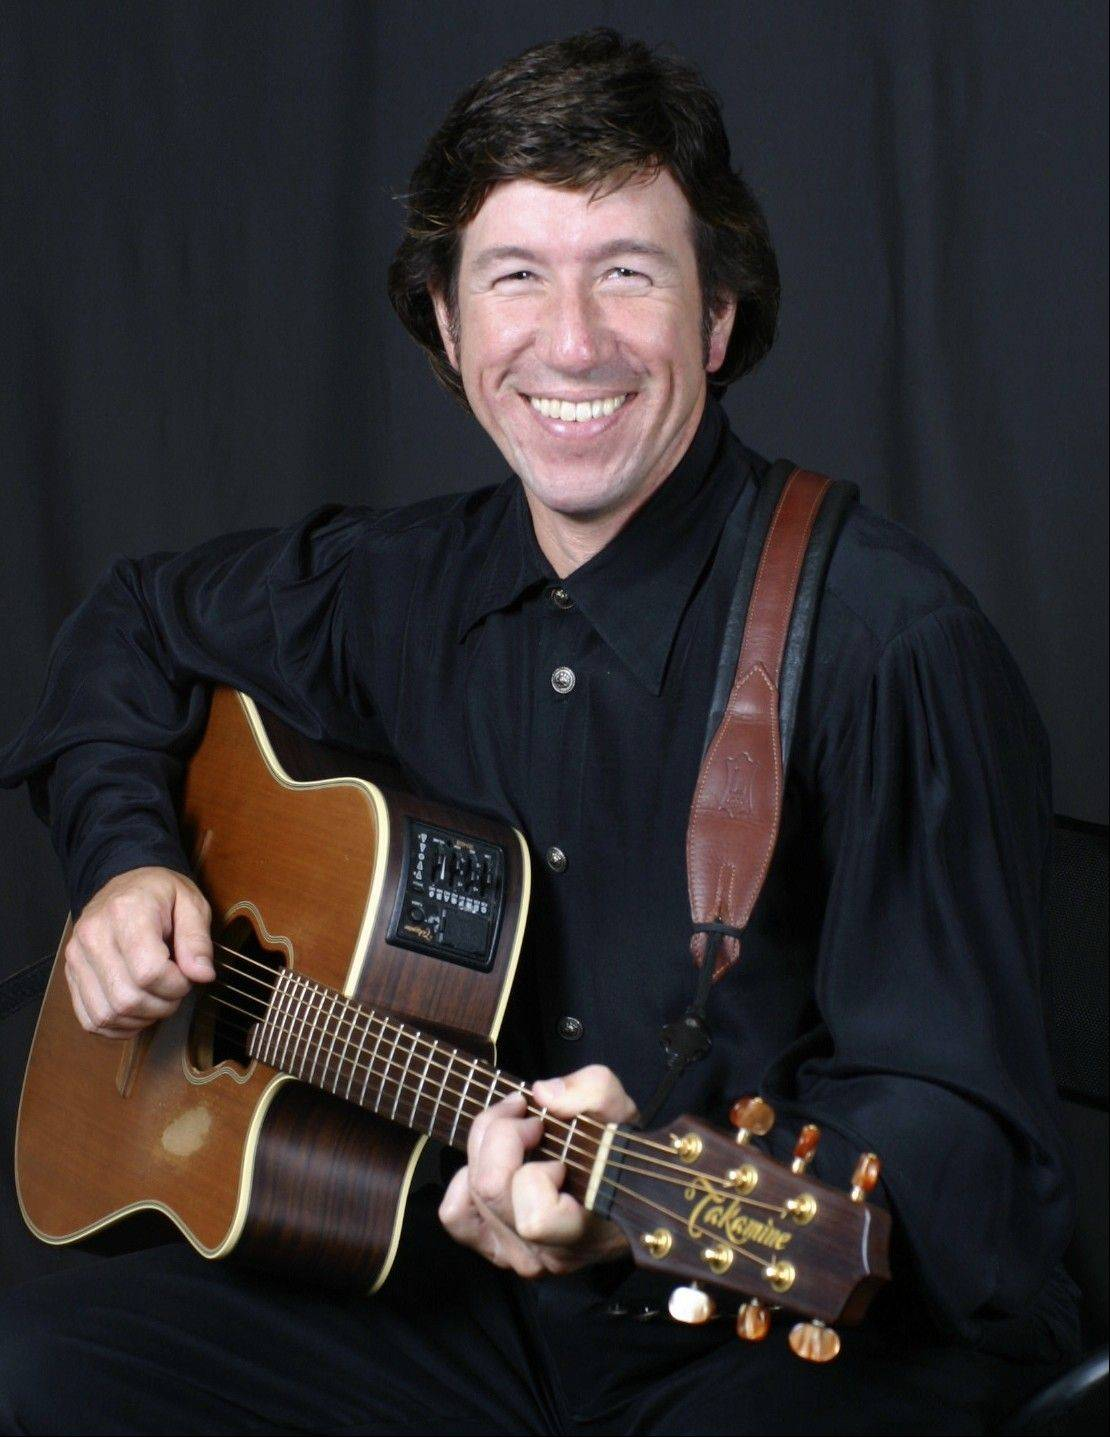 Denny Diamond will perform Neil Diamond hits at the Metropolis Performing Arts Centre in Arlington Heights.